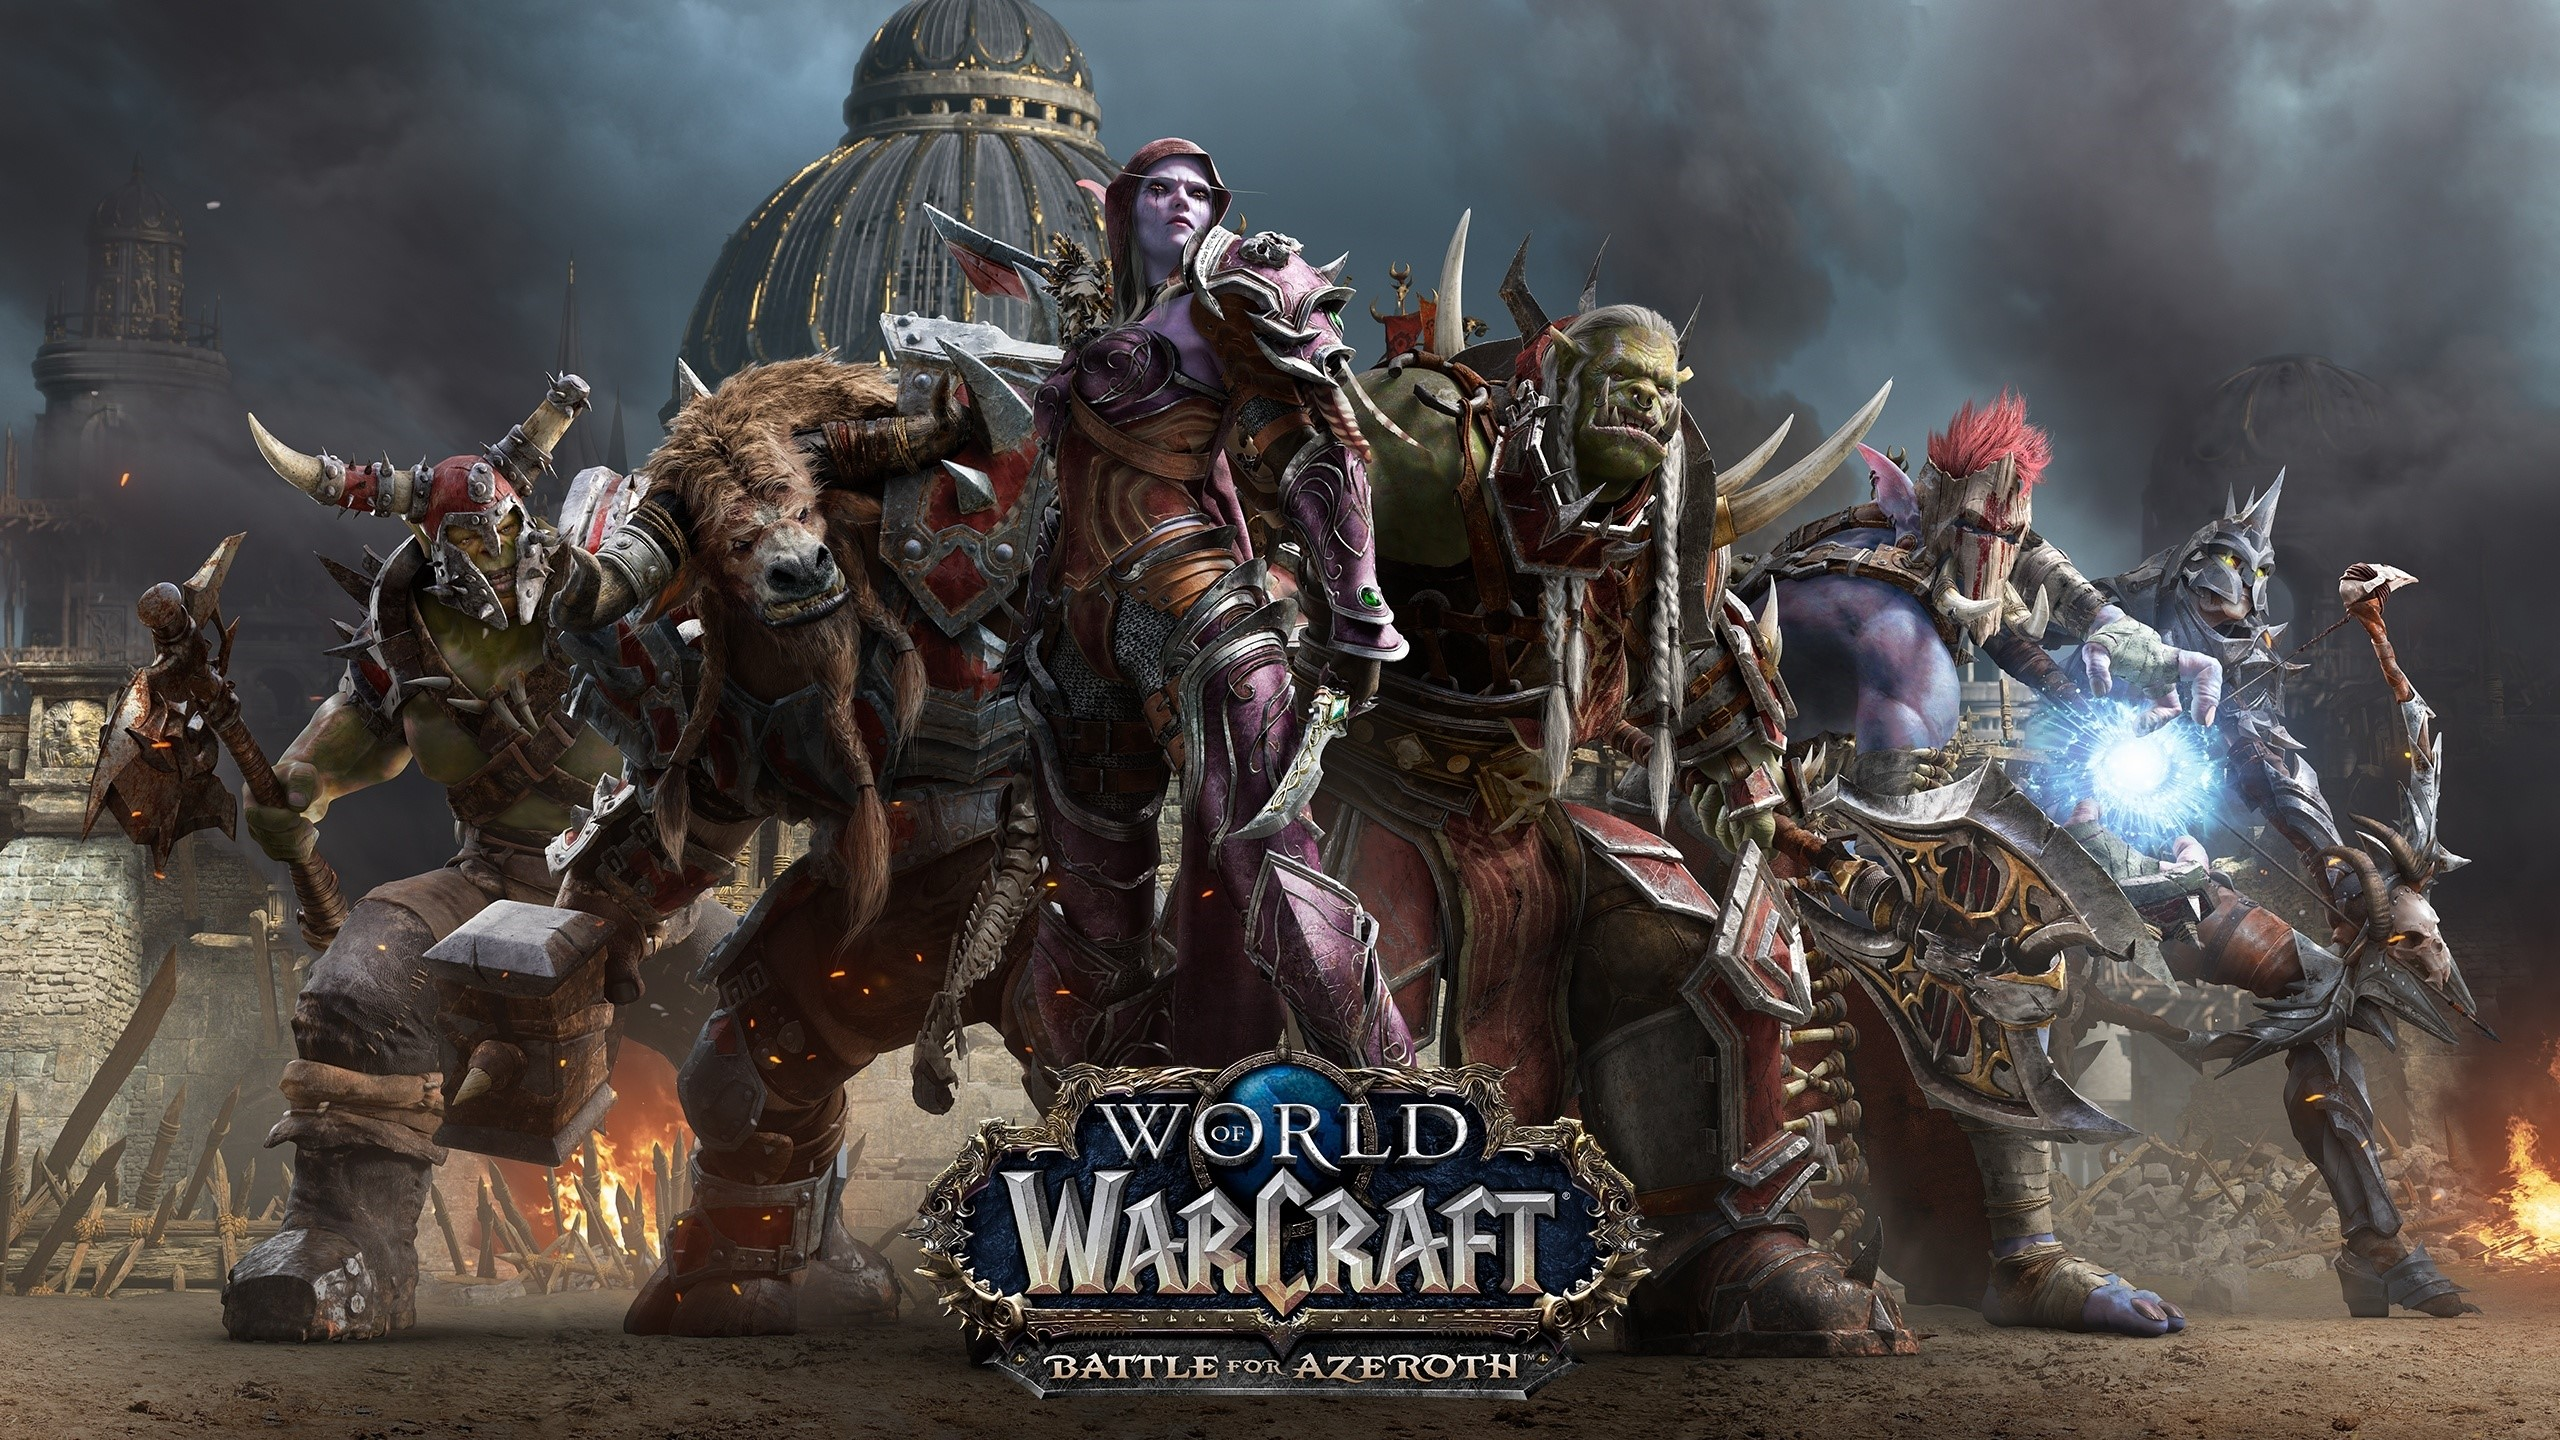 WORLD OF WARCRAFT: BATTLE FOR AZEROTH USA + LVL 110